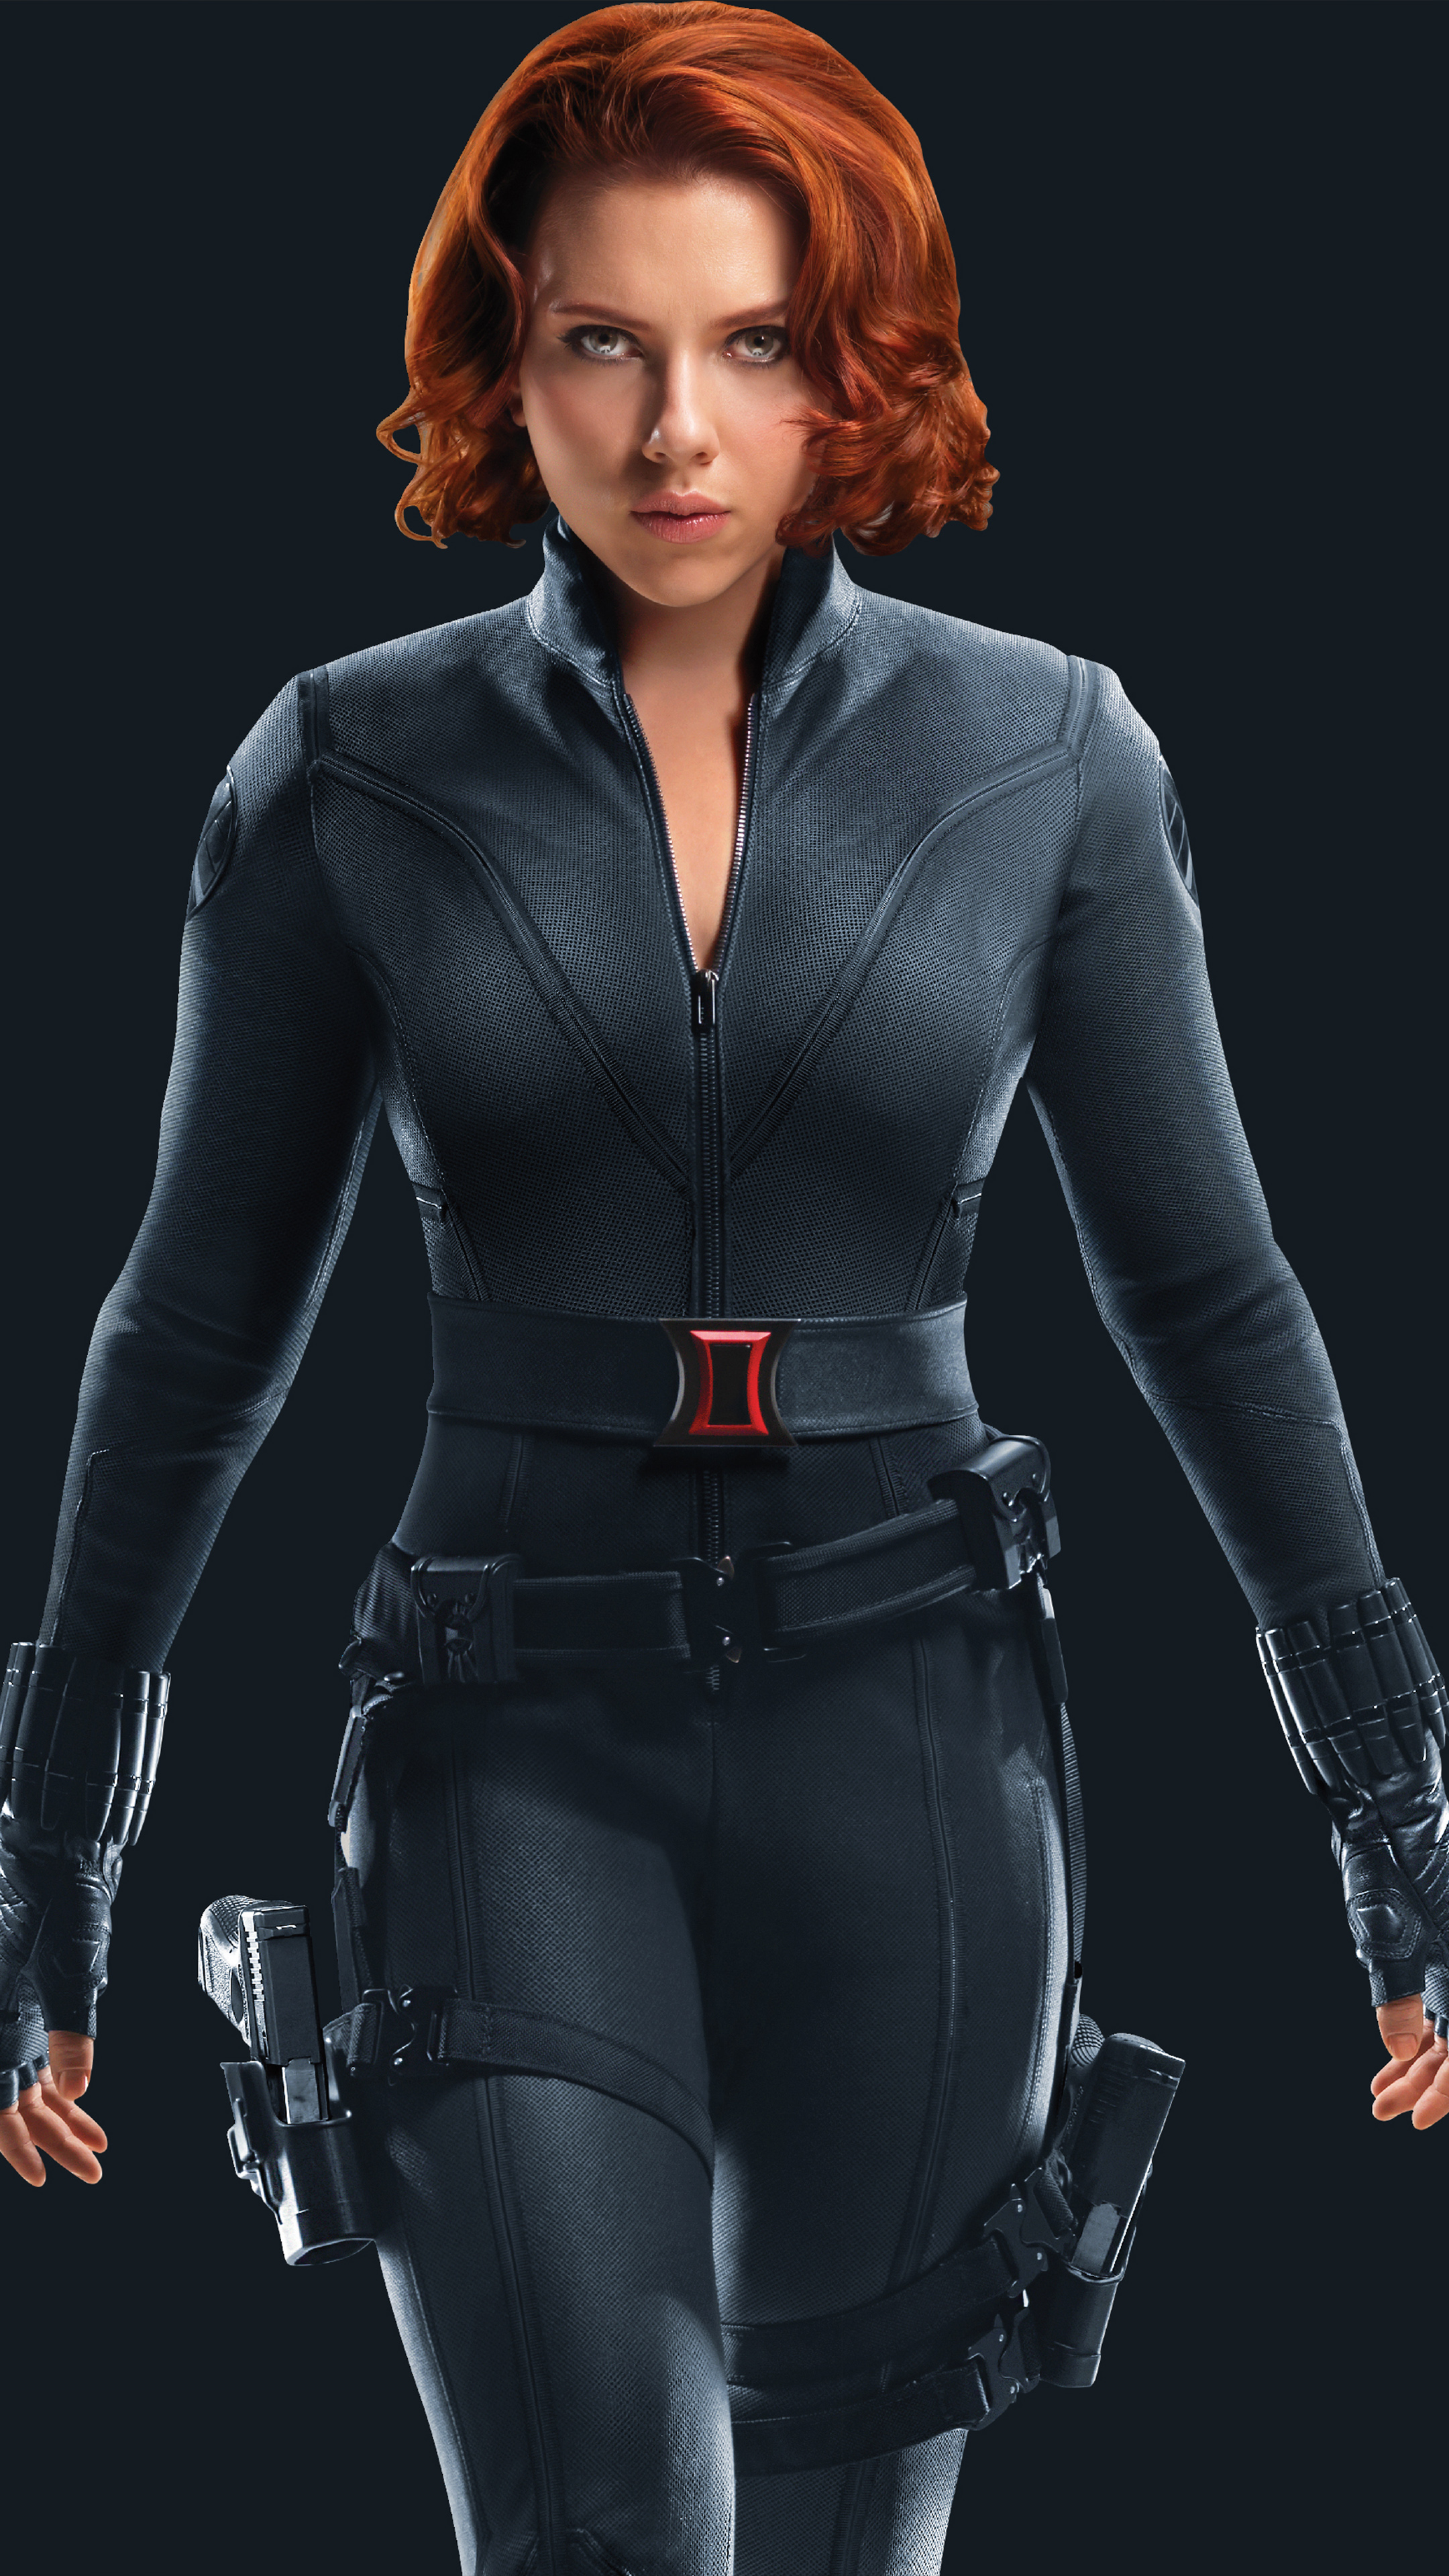 Download Black Widow Scarlett Johansson Superhero Free Pure